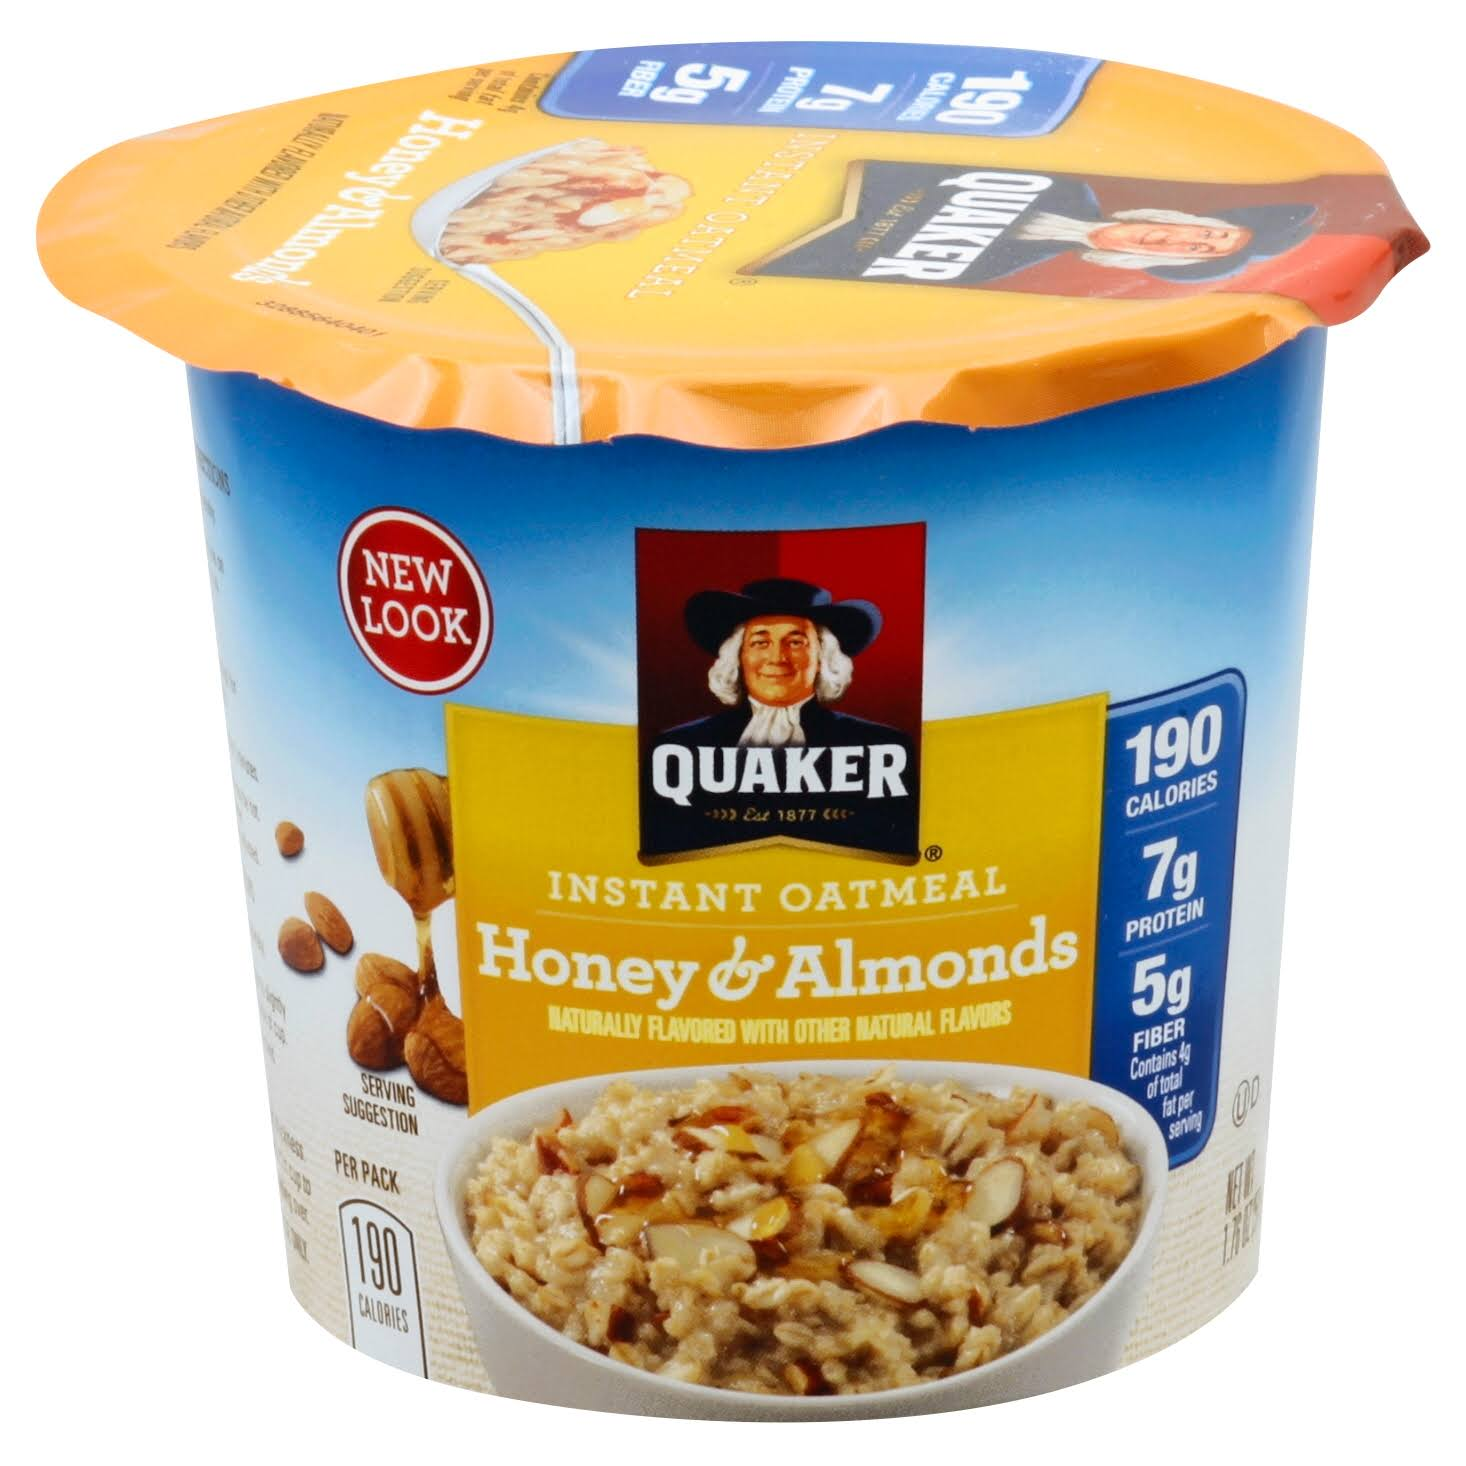 Quaker Instant Oatmeal - 1.76oz, Honey & Almonds